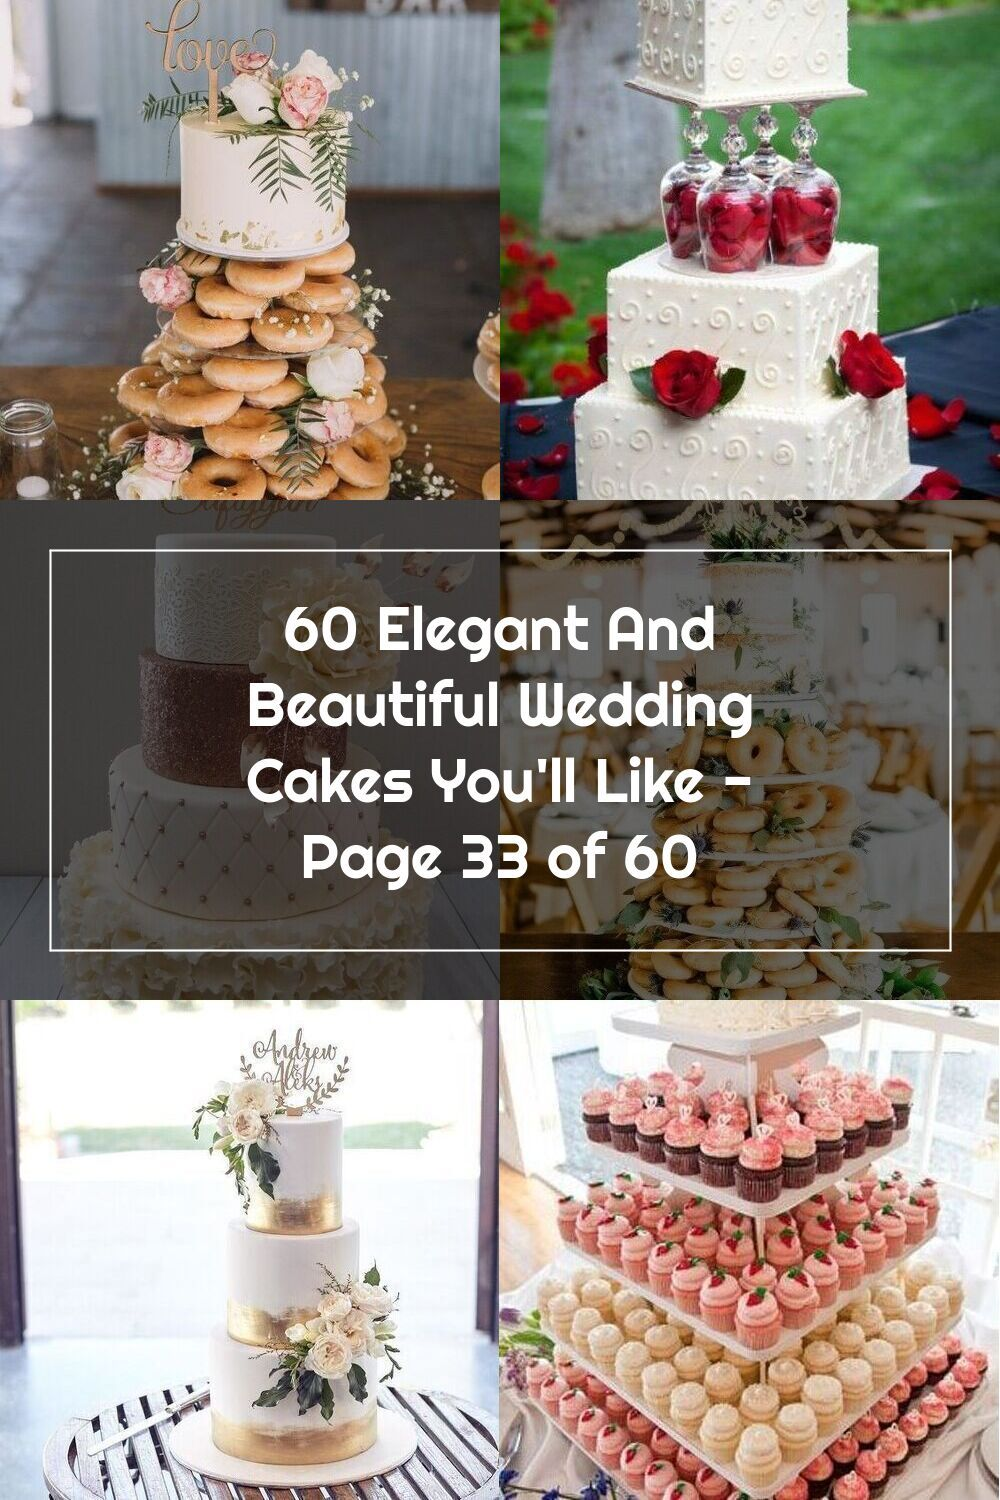 60 Elegant And Beautiful Wedding Cakes You'll Like Page